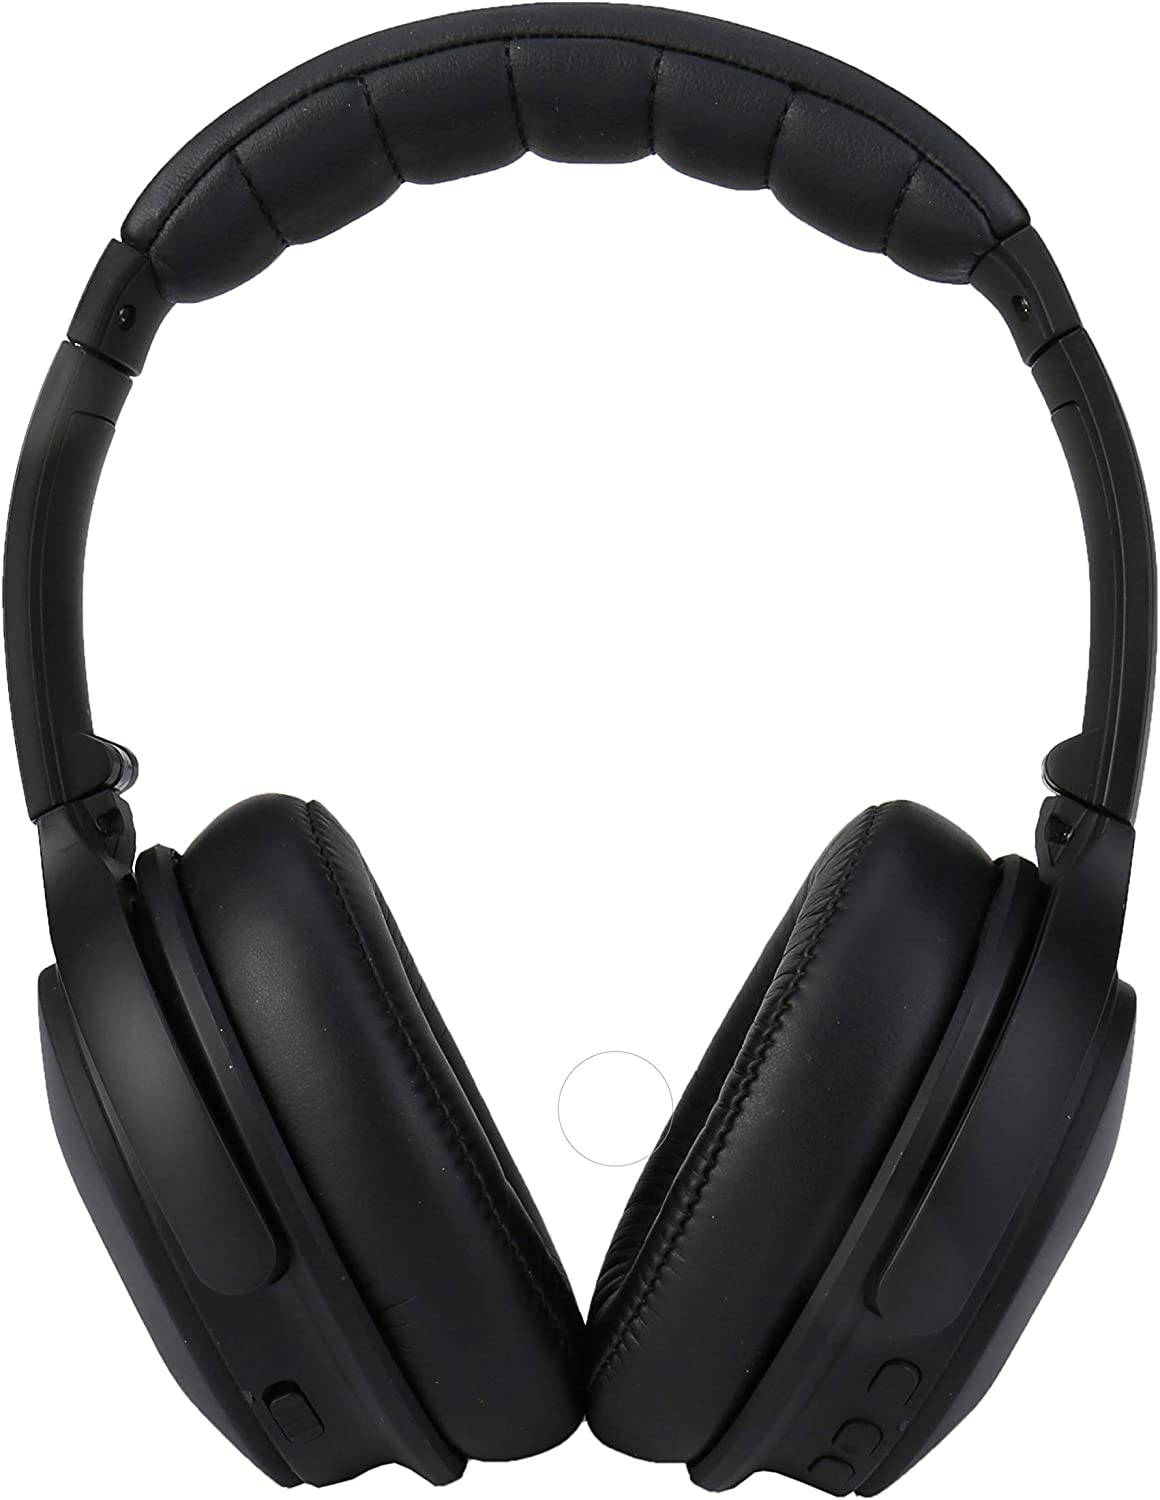 XINWU 801 Active Noise Cancelling Bluetooth Headphone w Soft Protein Earmuff, High Stereo Surround Sound, Built-in Mic, Wired Mode, 20h Long Battery Life Fodable Lightweight Over Ear Design Black